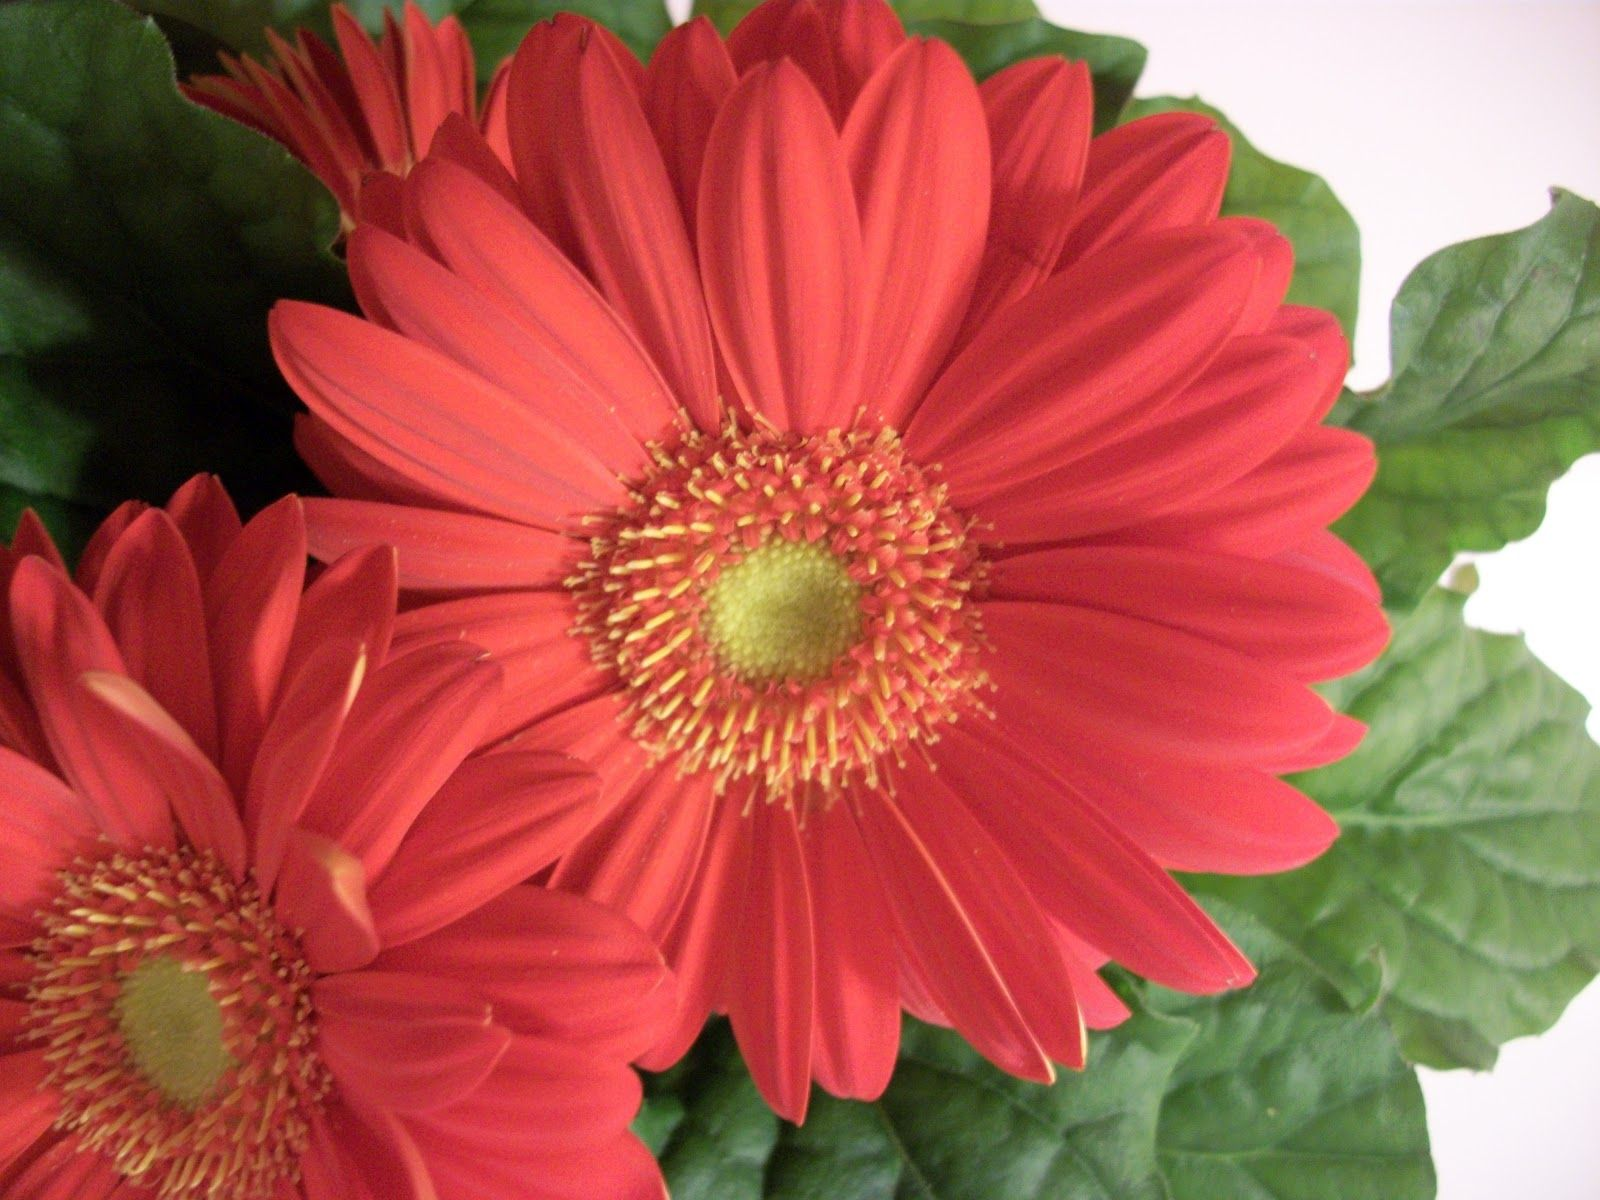 Coral flowers gerbera daisies come in bright colors that cheer up coral flowers gerbera daisies come in bright colors that cheer up the heart just by izmirmasajfo Images